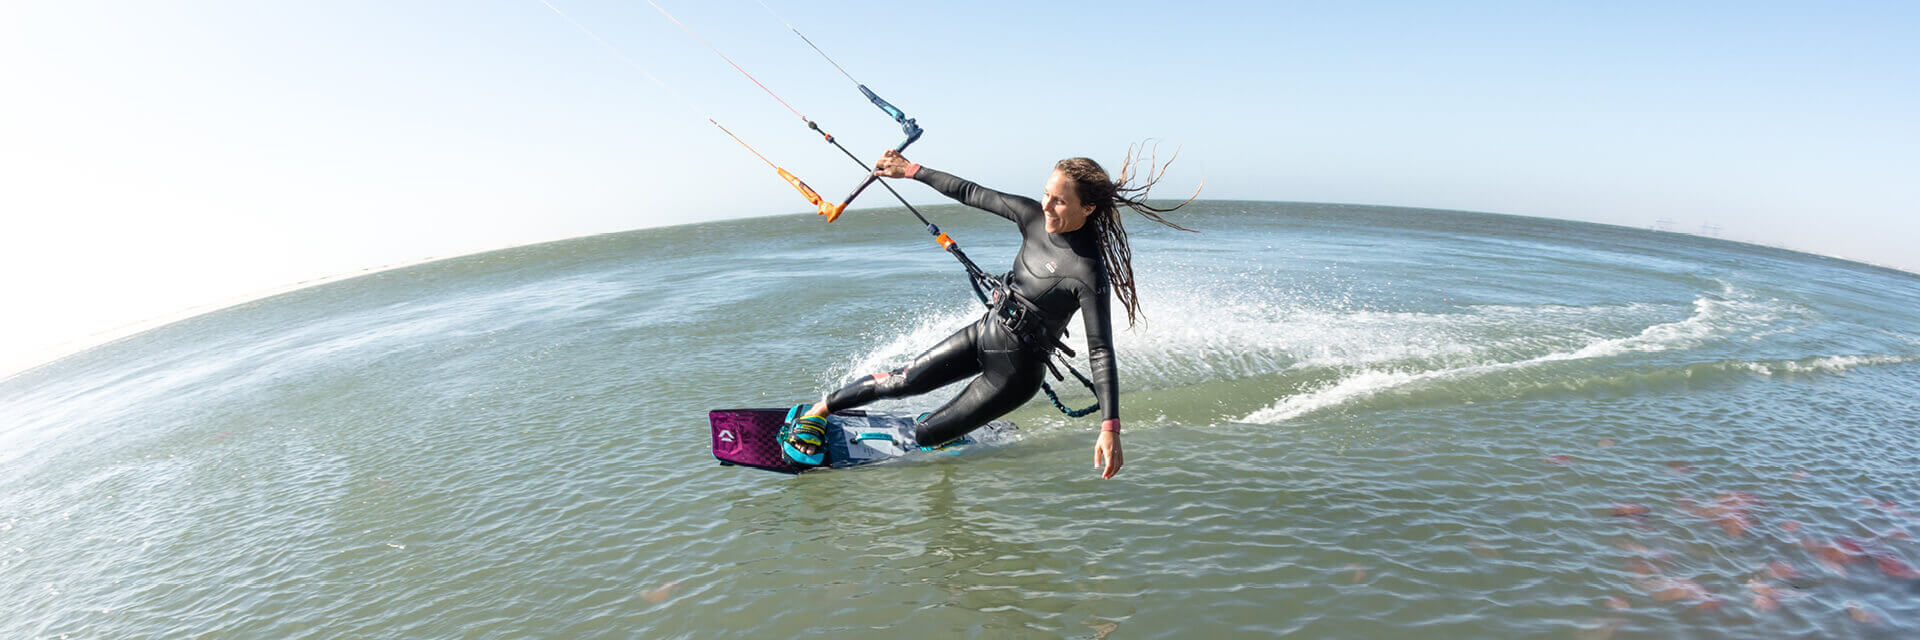 Duotone Kiteboarding Soleil Textreme 2020 Colleen Carroll Header 04